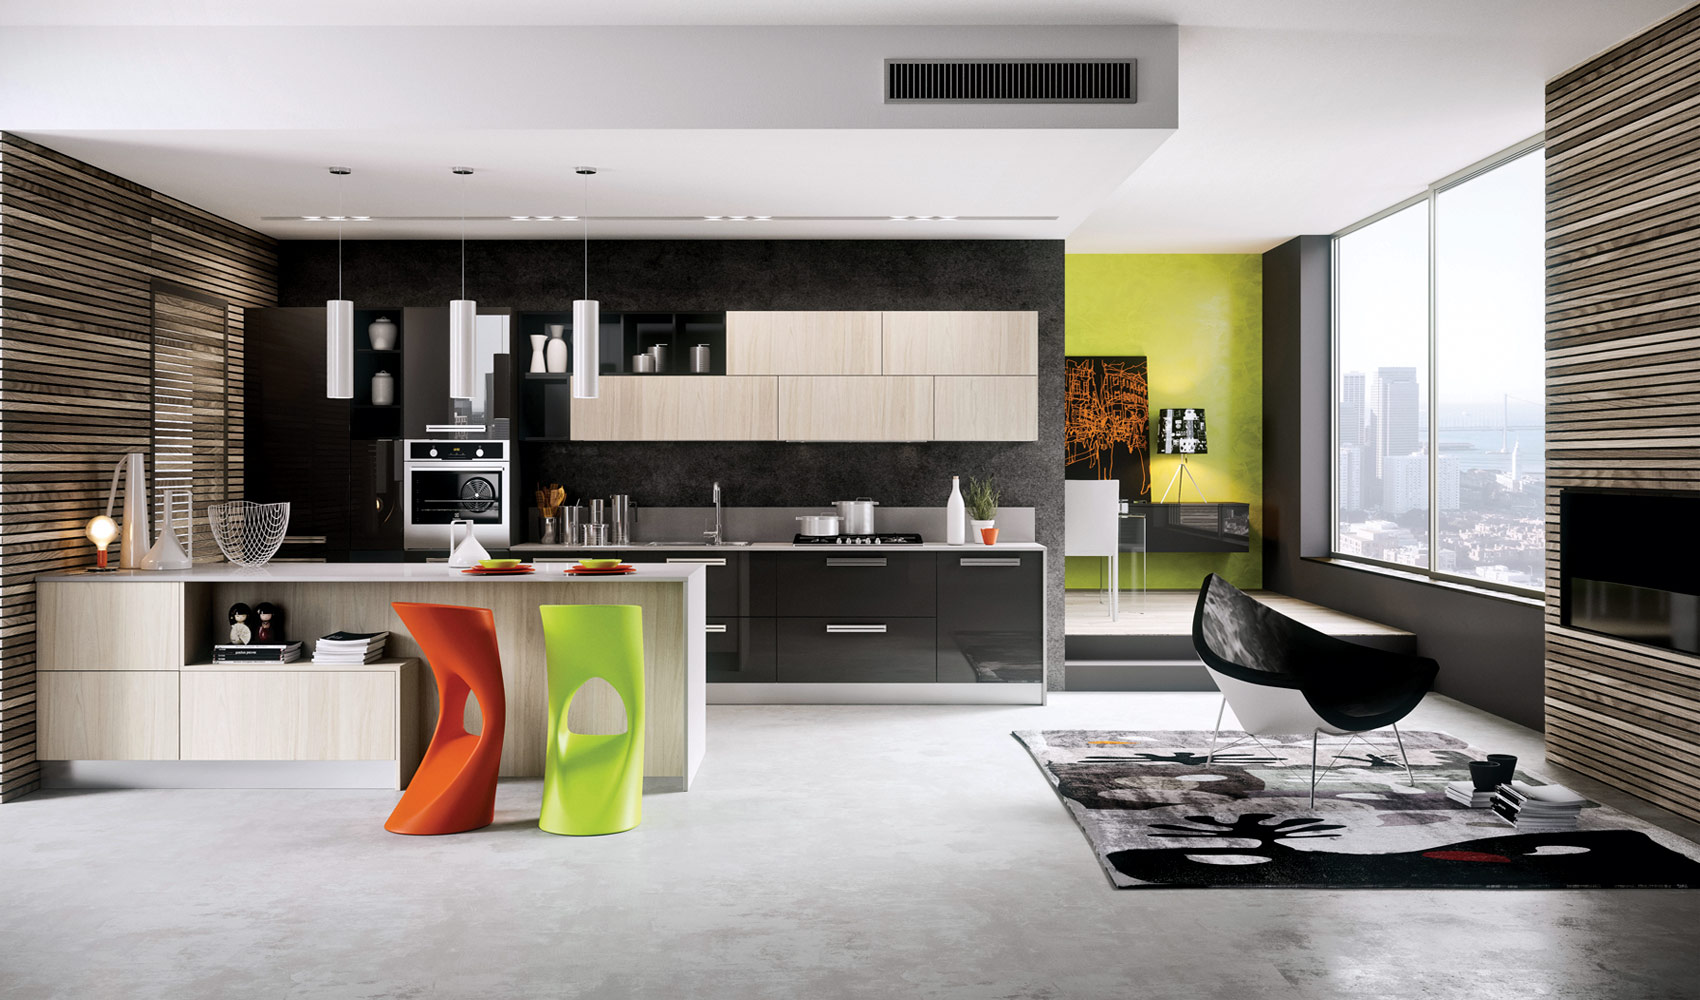 Kitchen designs that pop for Kichan dizain